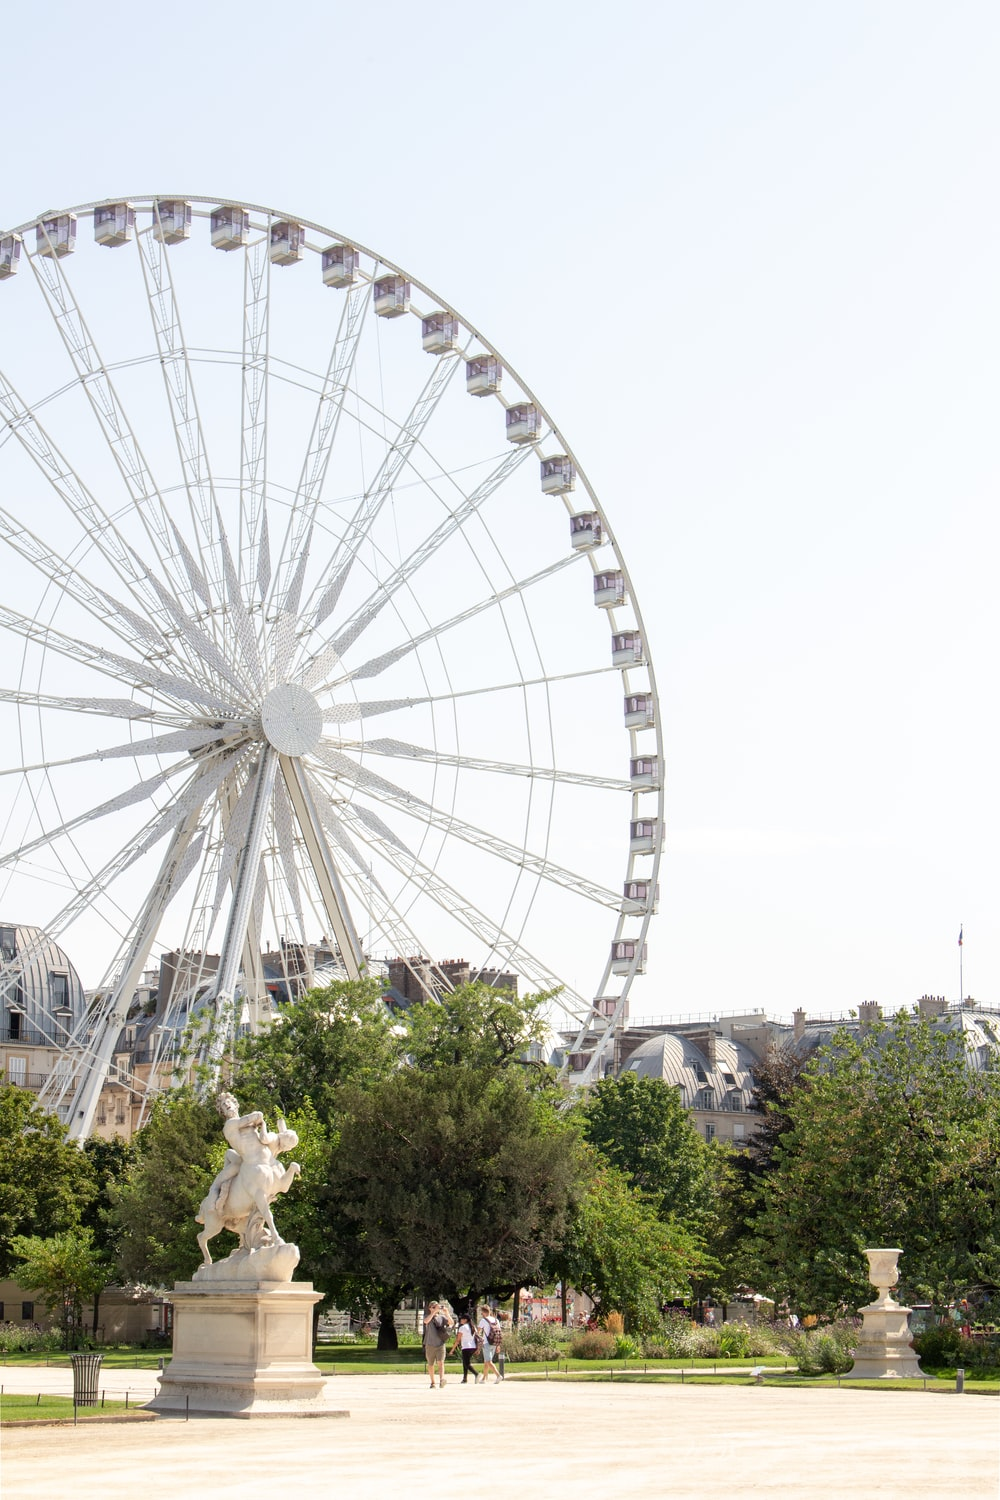 gray and white ferris whee l